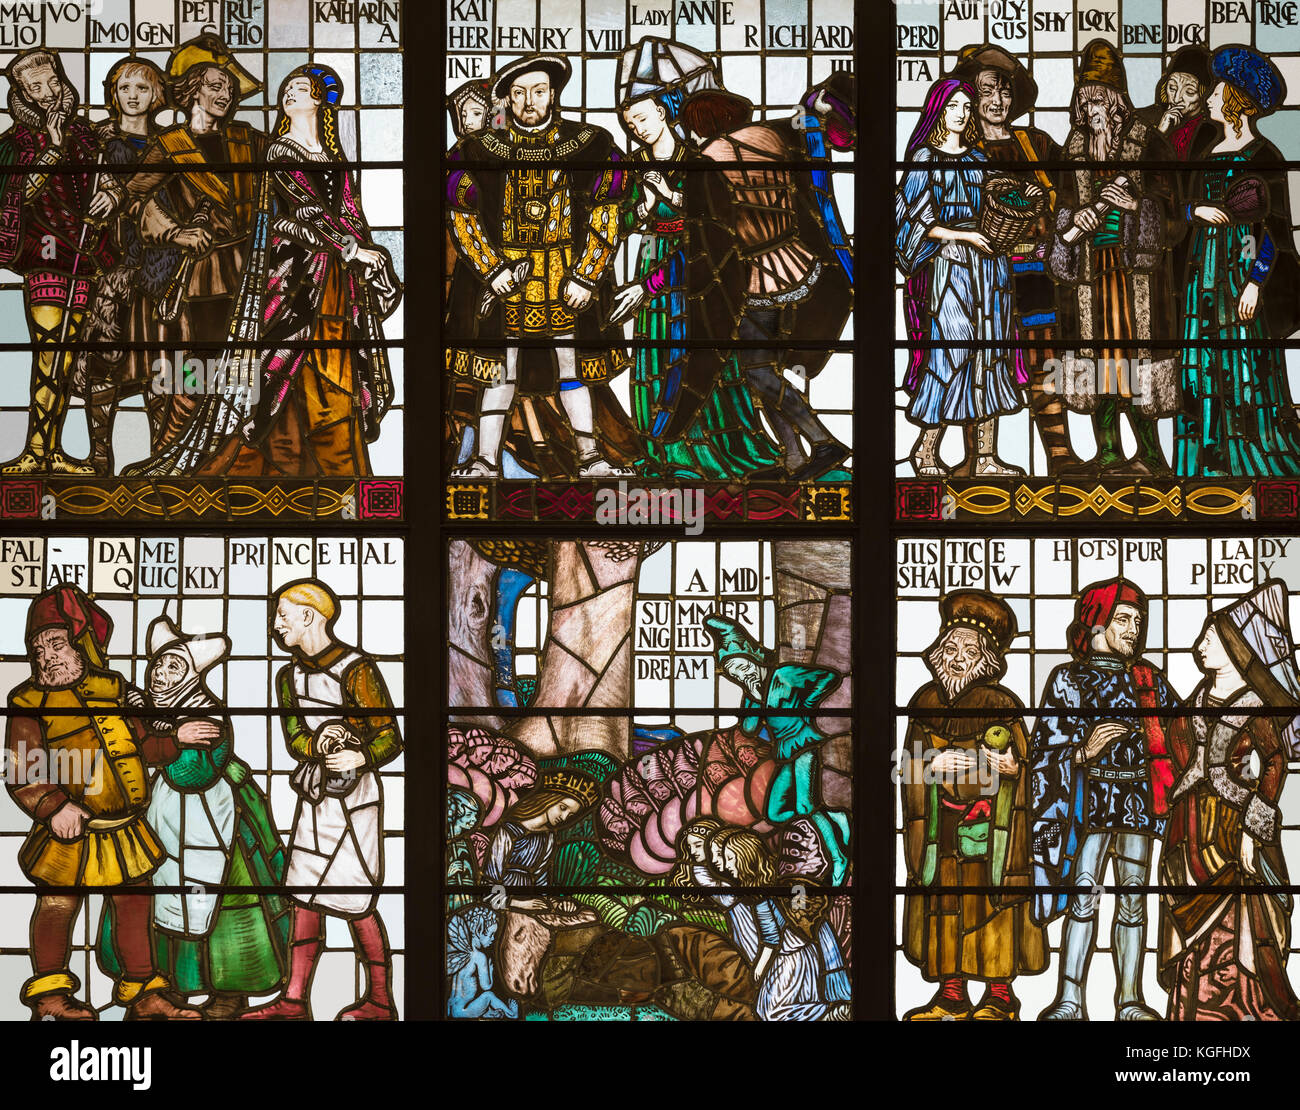 Shakespearean characters above the main entrance hall to The Central Library, Manchester, UK - Stock Image